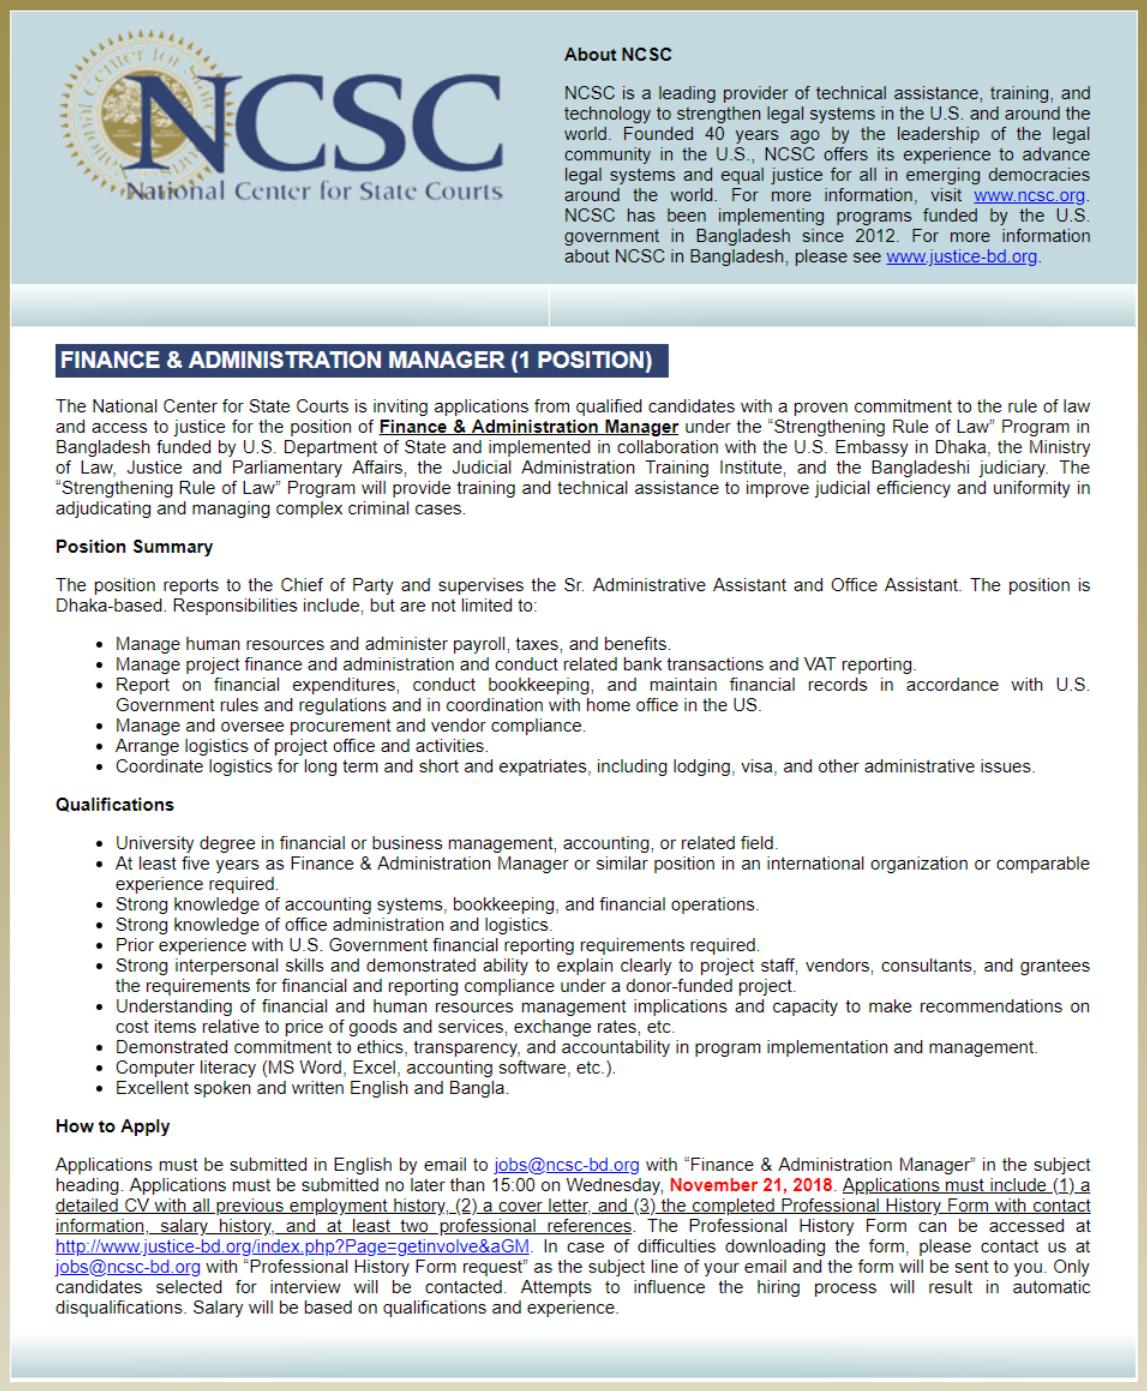 National Center for State Courts NCSC Job Circular -ncsc-bd.org